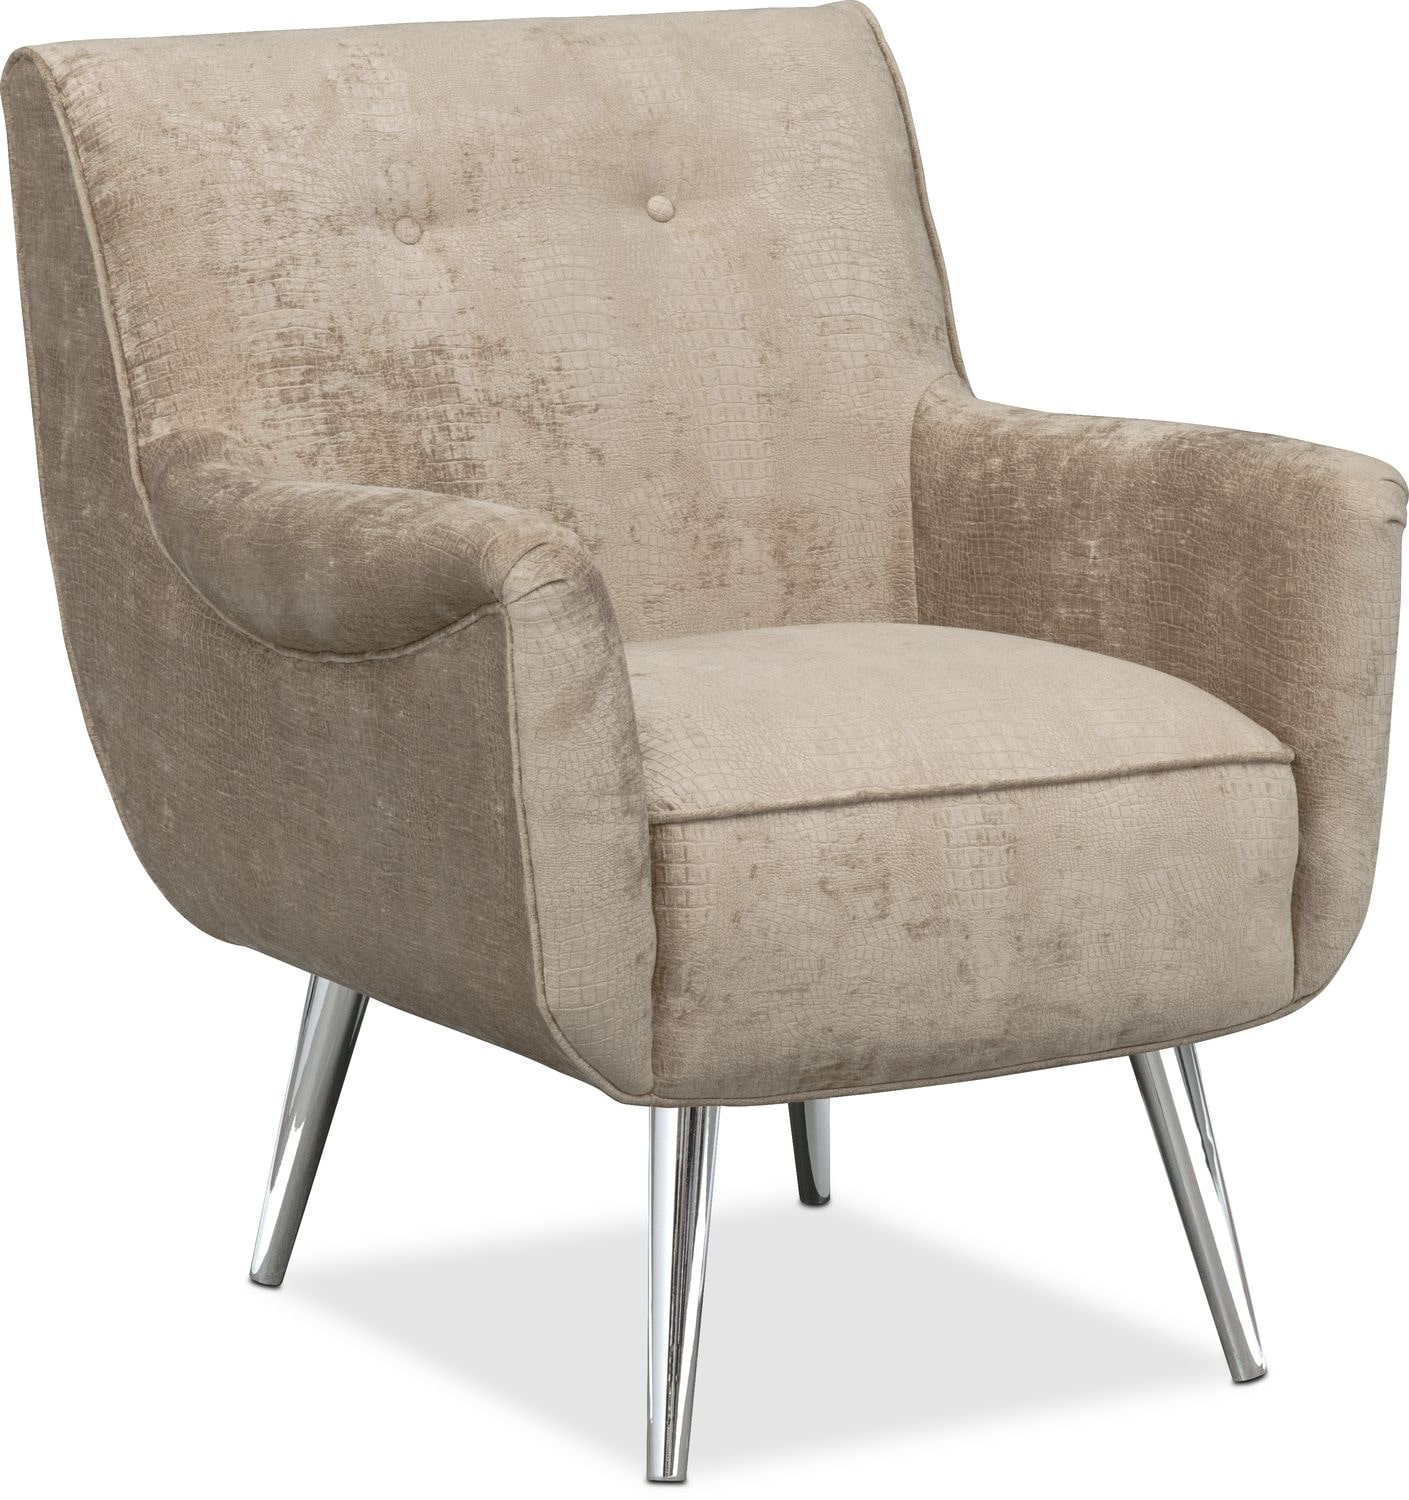 Burgundy Accent Chair Accent Chairs Value City Furniture